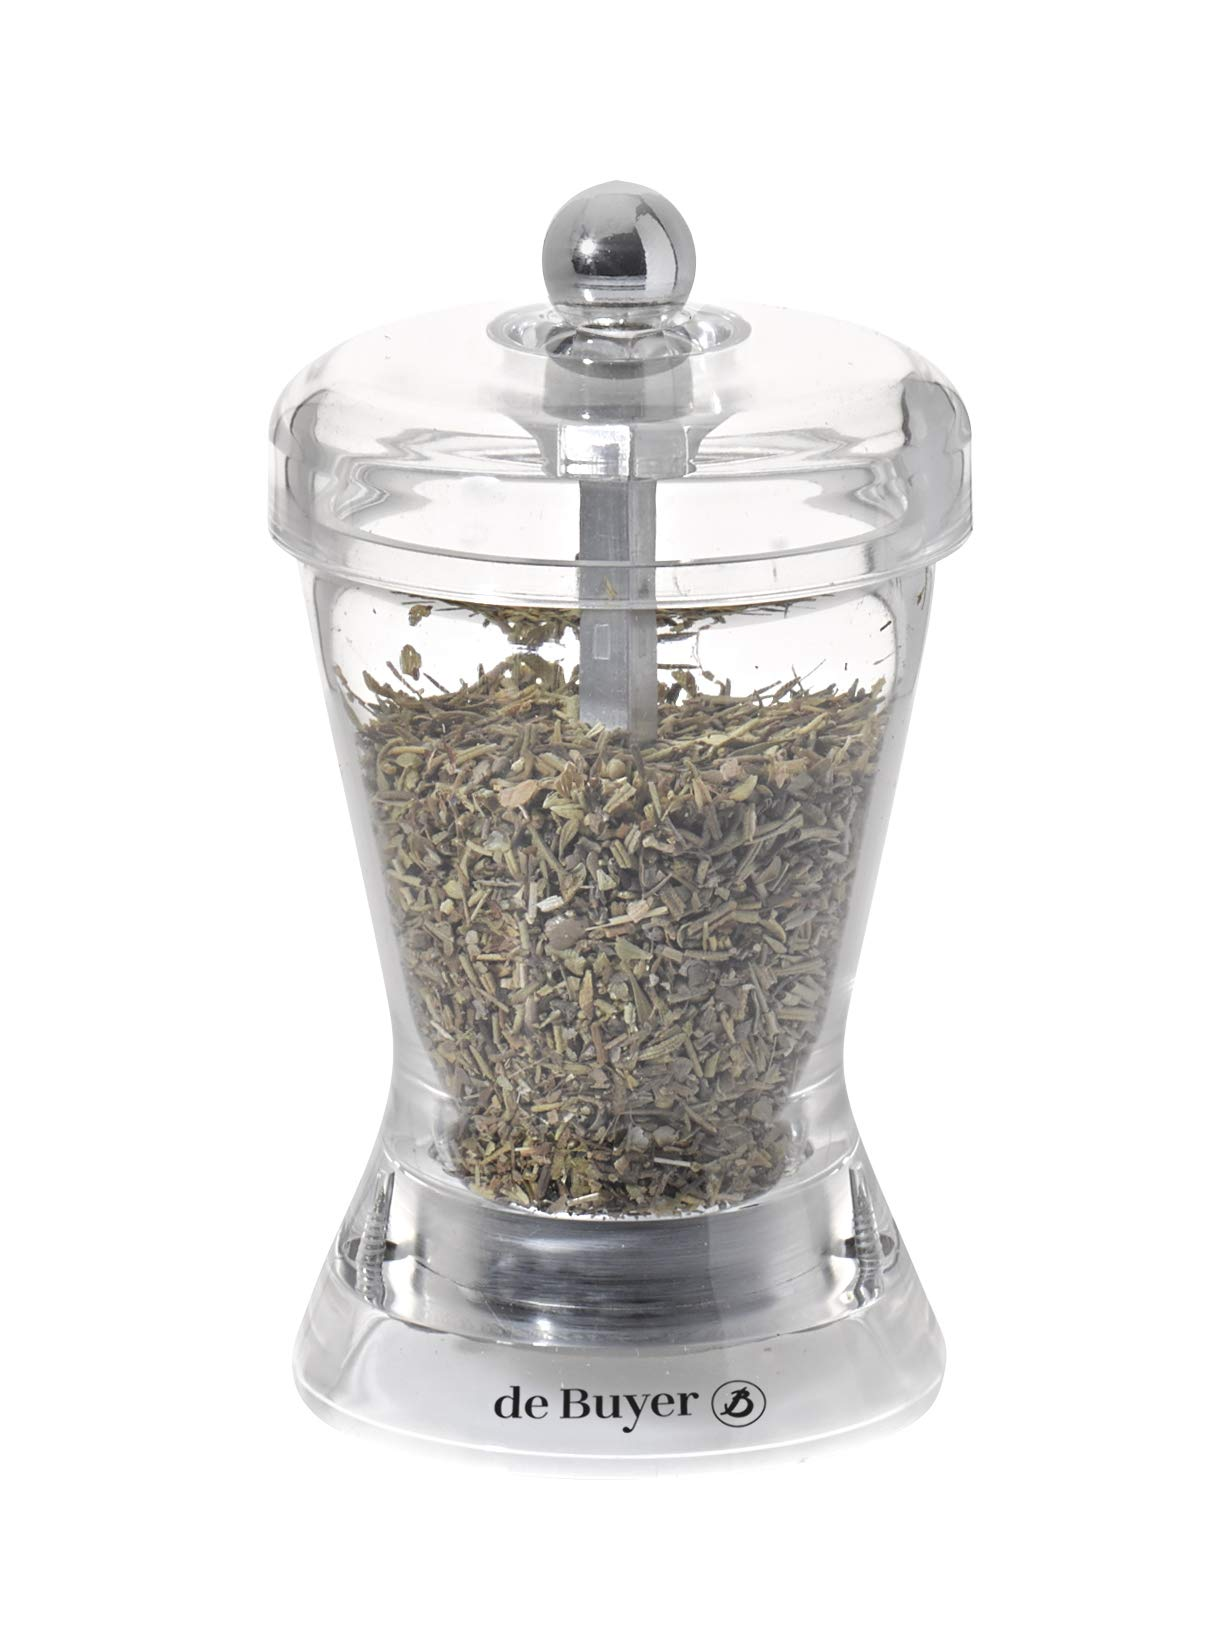 SPECIAL ACRYLIC MILL ZOUK Herbs Mill, transparent, 4-Inch by DE BUYER